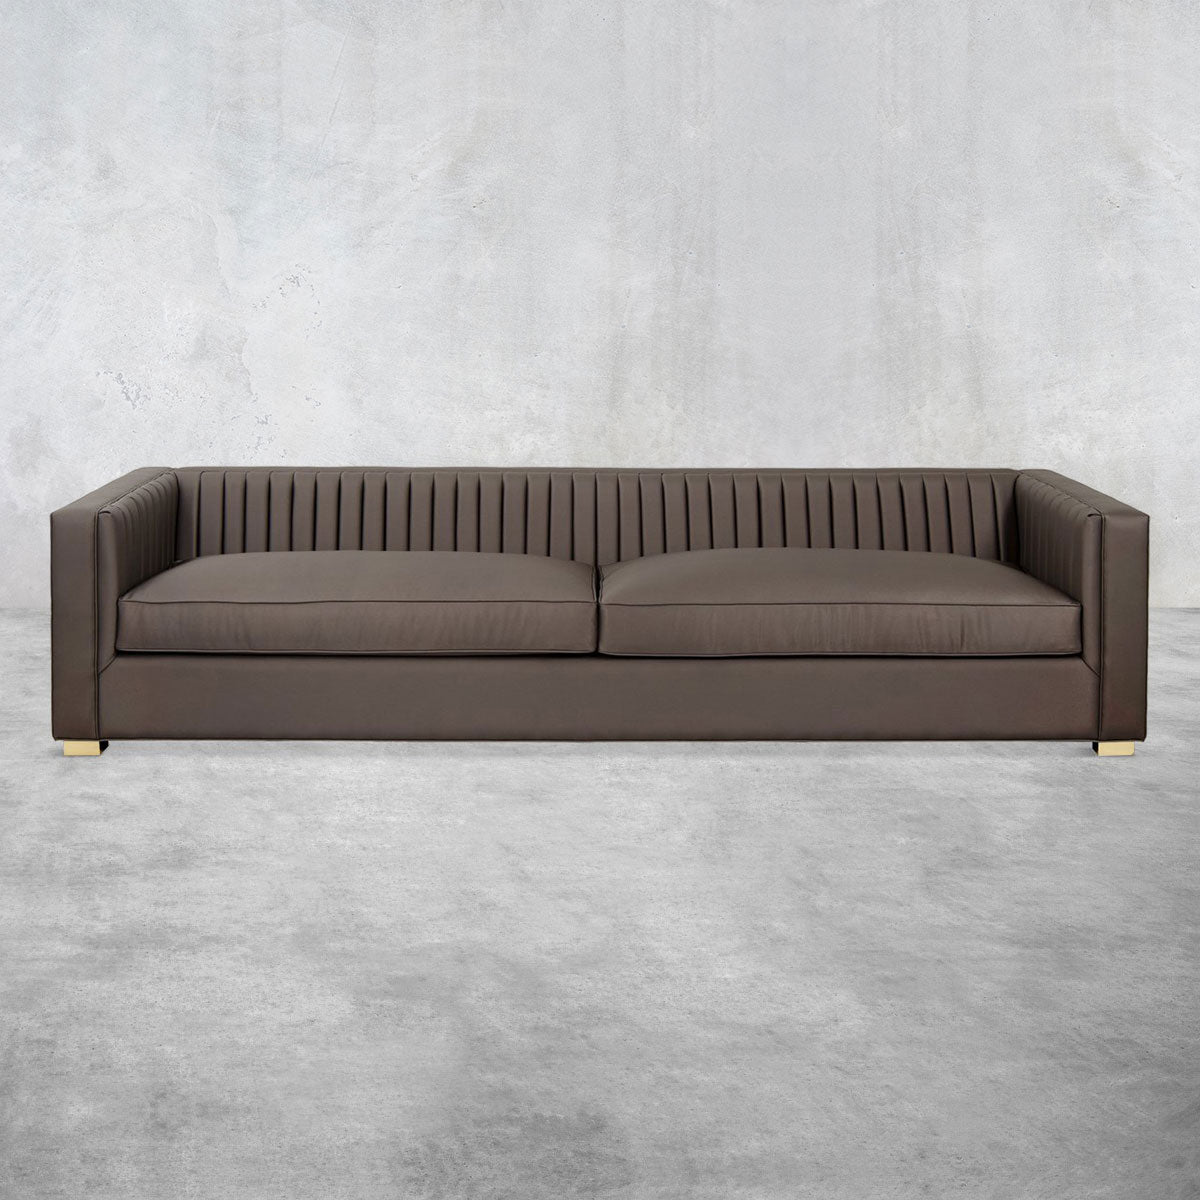 Acapulco Sofa in Faux Leather